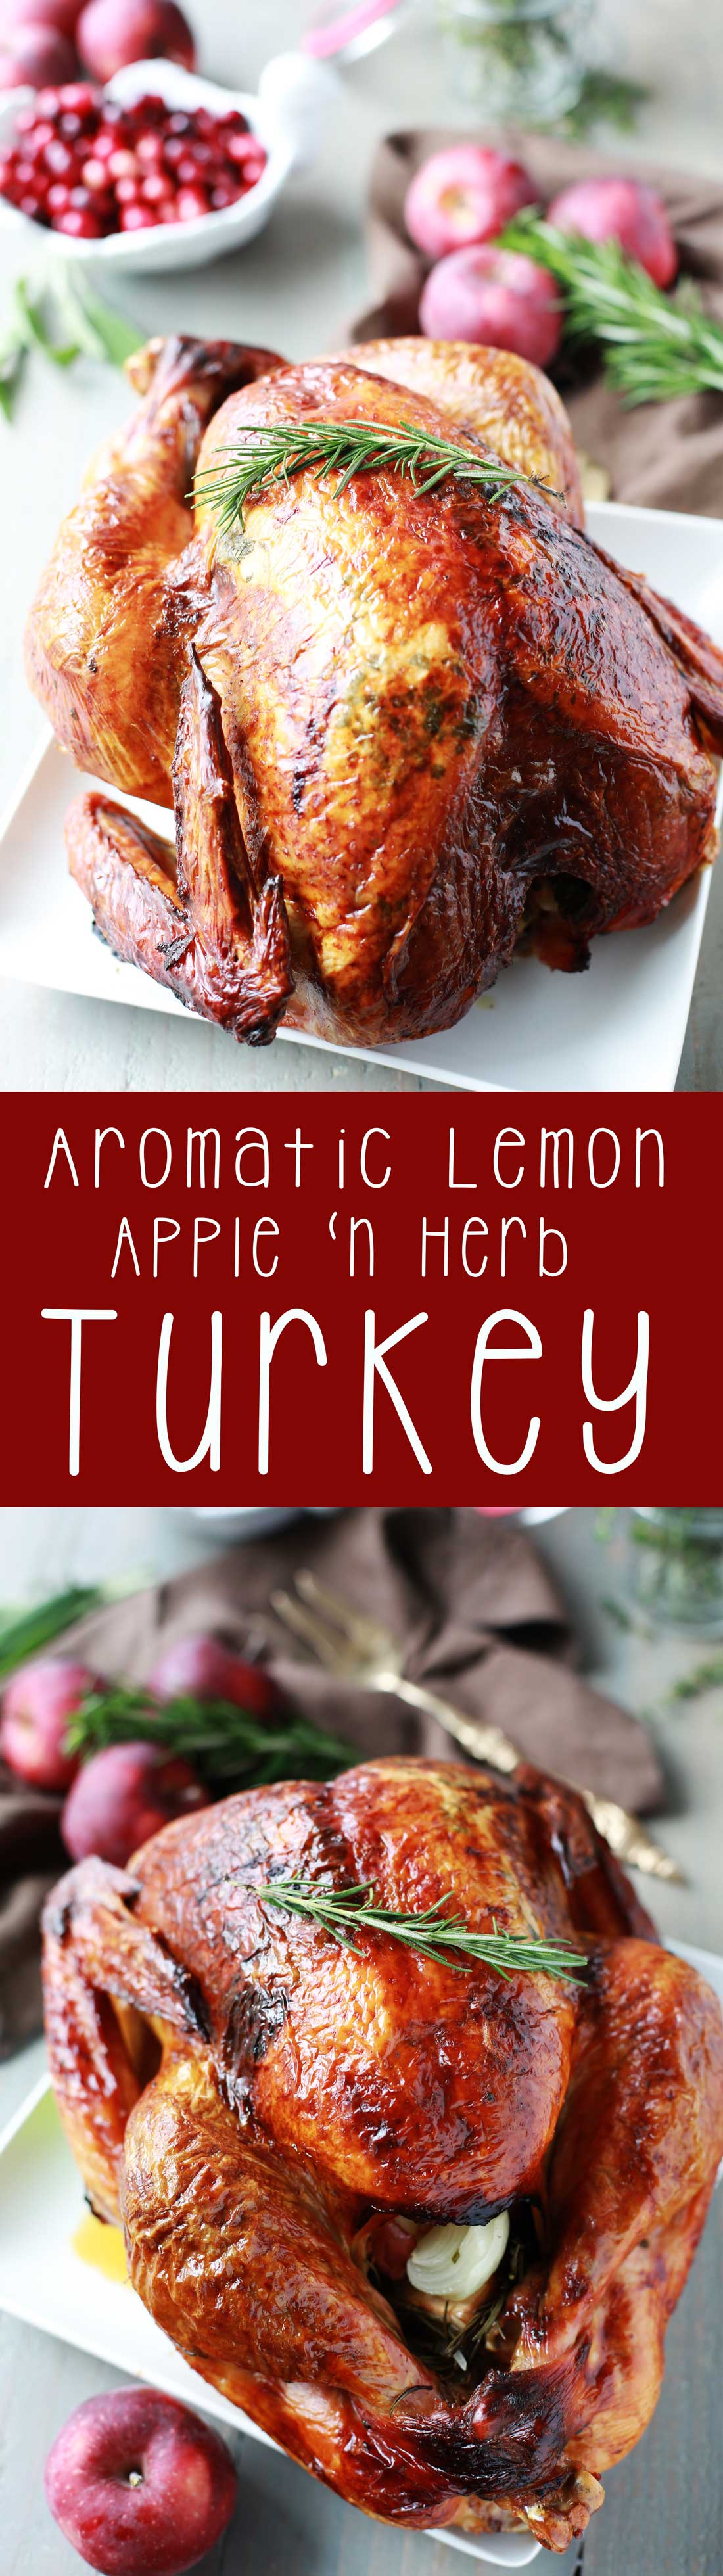 Turkey recipe aromatic lemon apple and herb turkey for How long to cook 11 lb turkey